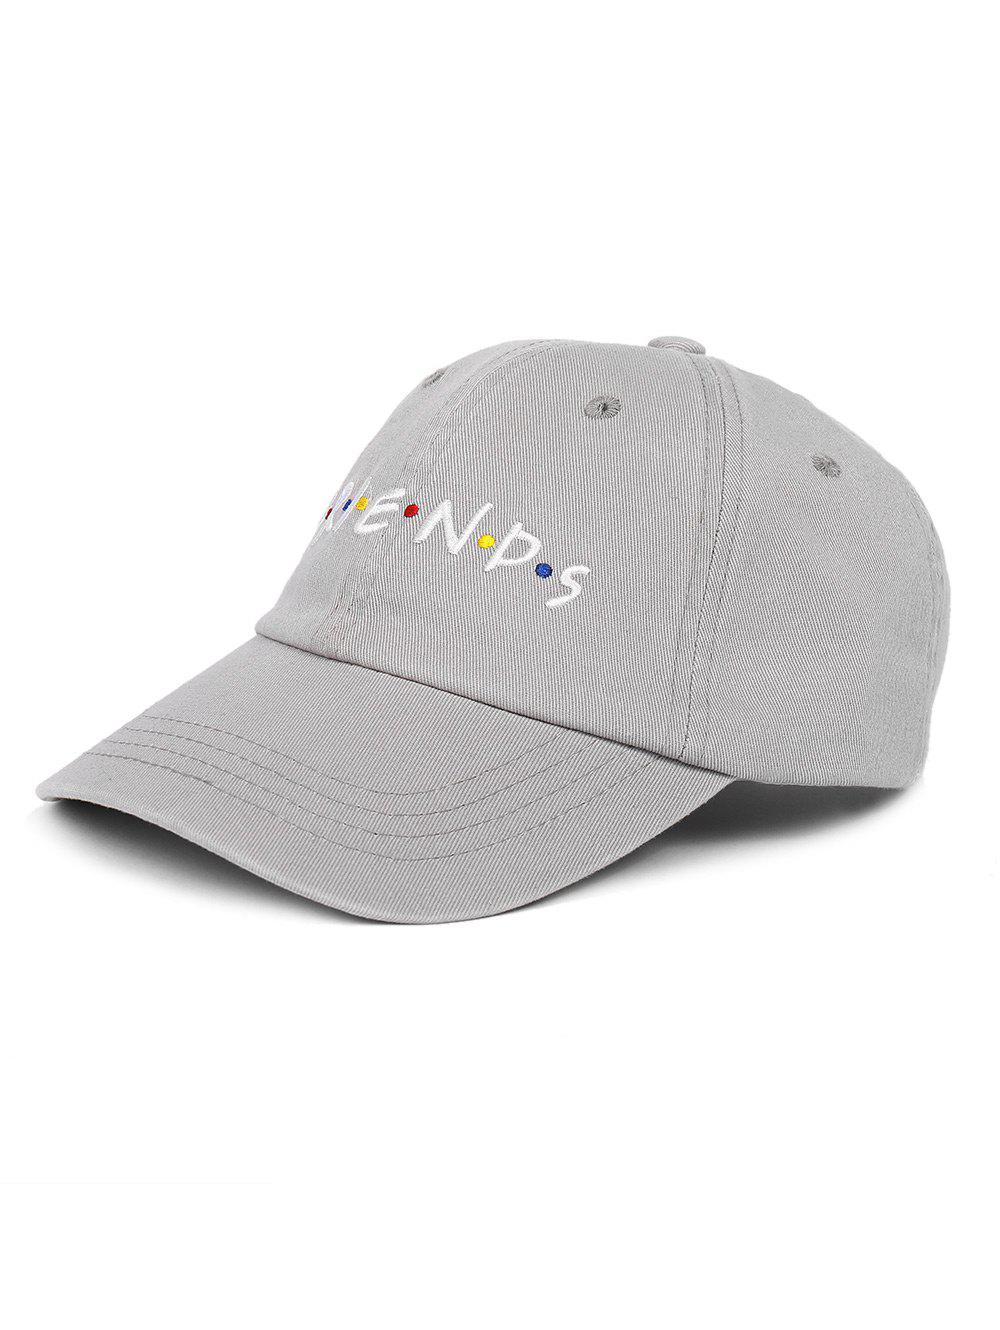 Discount Outdoor FRIENDS Pattern Embroidery Adjustable Baseball Hat